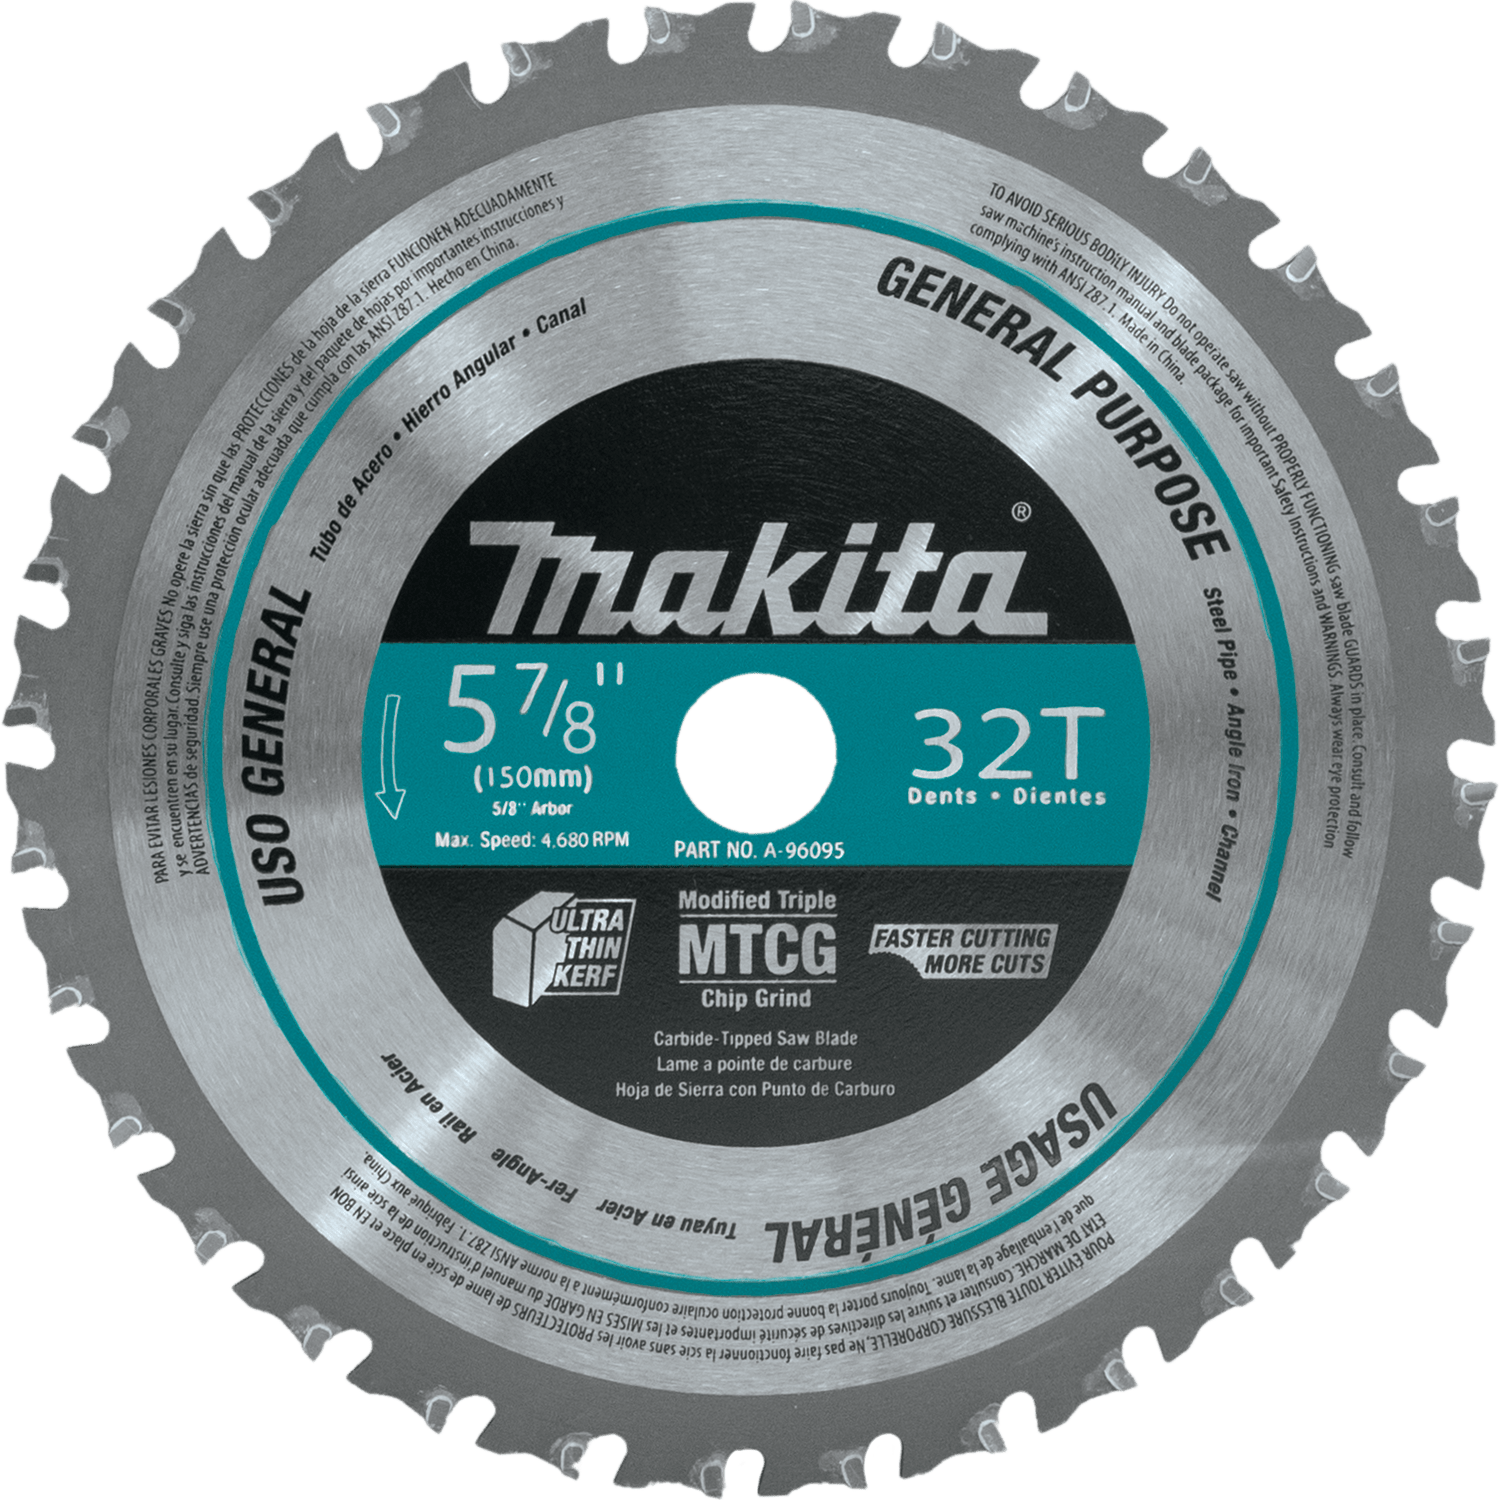 12 Inch Circular Saw Blade With 58 Arbor